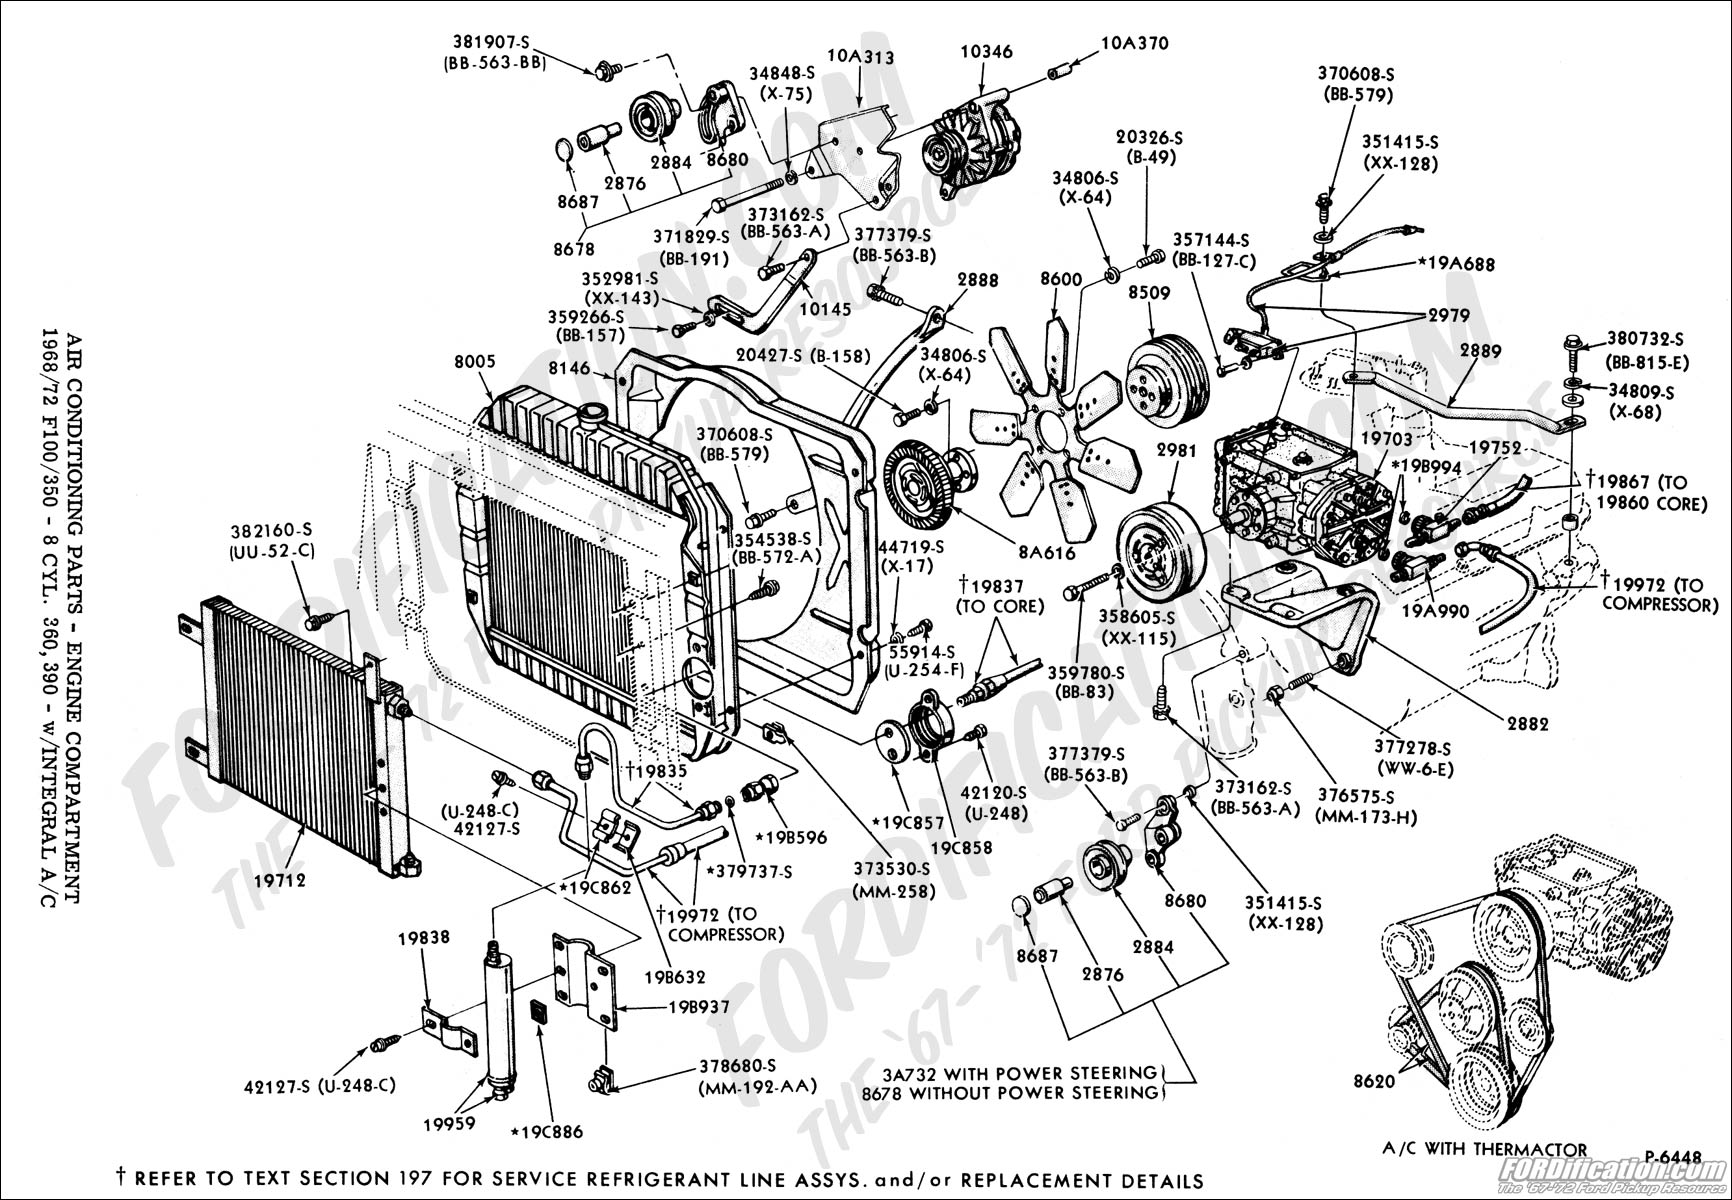 Ac Assembly Diagram Wiring Schemes Honda Civic Engine Block Parts And Components Car Ford Truck Technical Drawings Schematics Section F Heating Rh Fordification Com Compressor